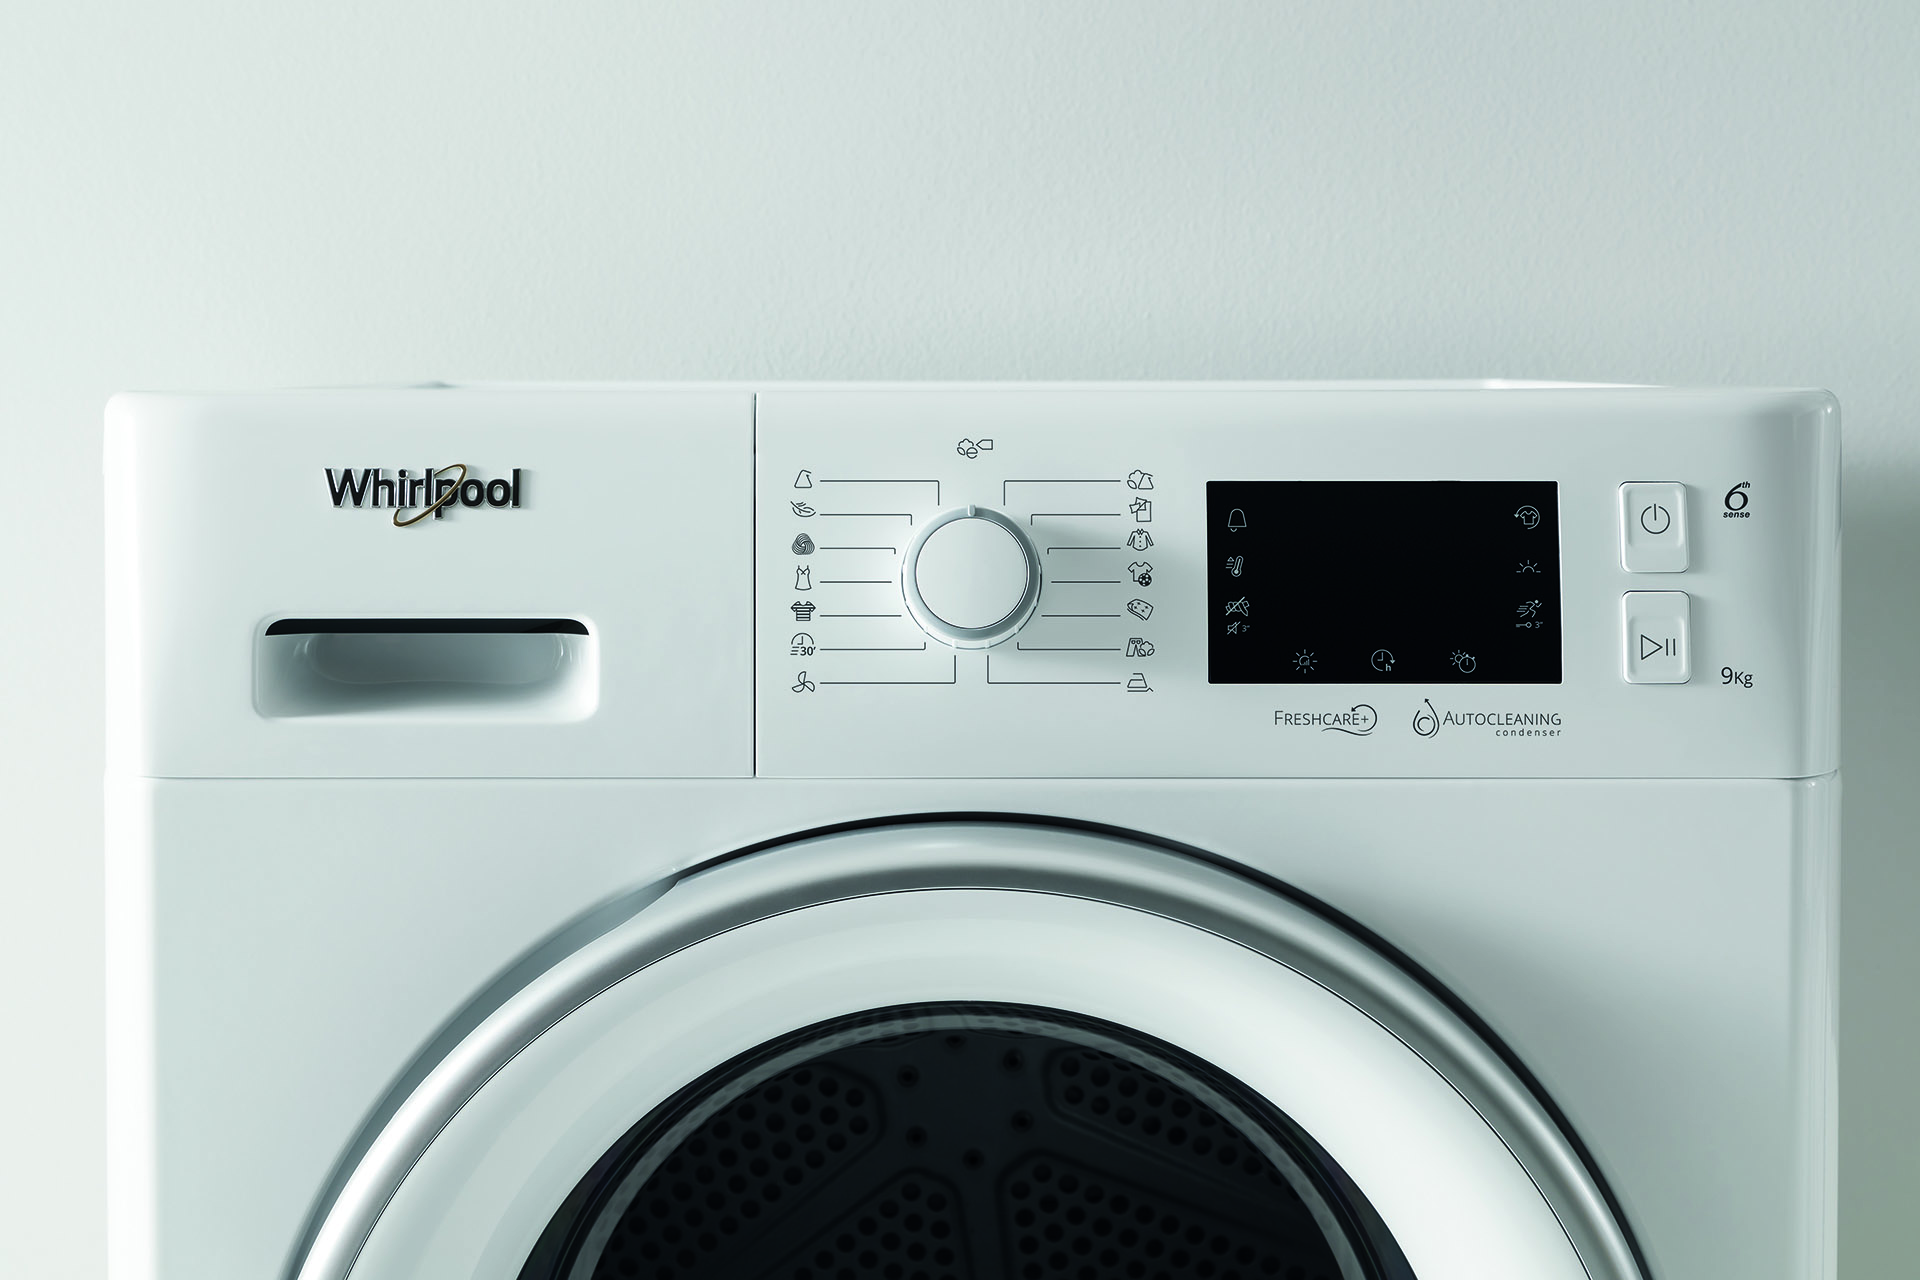 Whirlpool Supreme Care Dryer